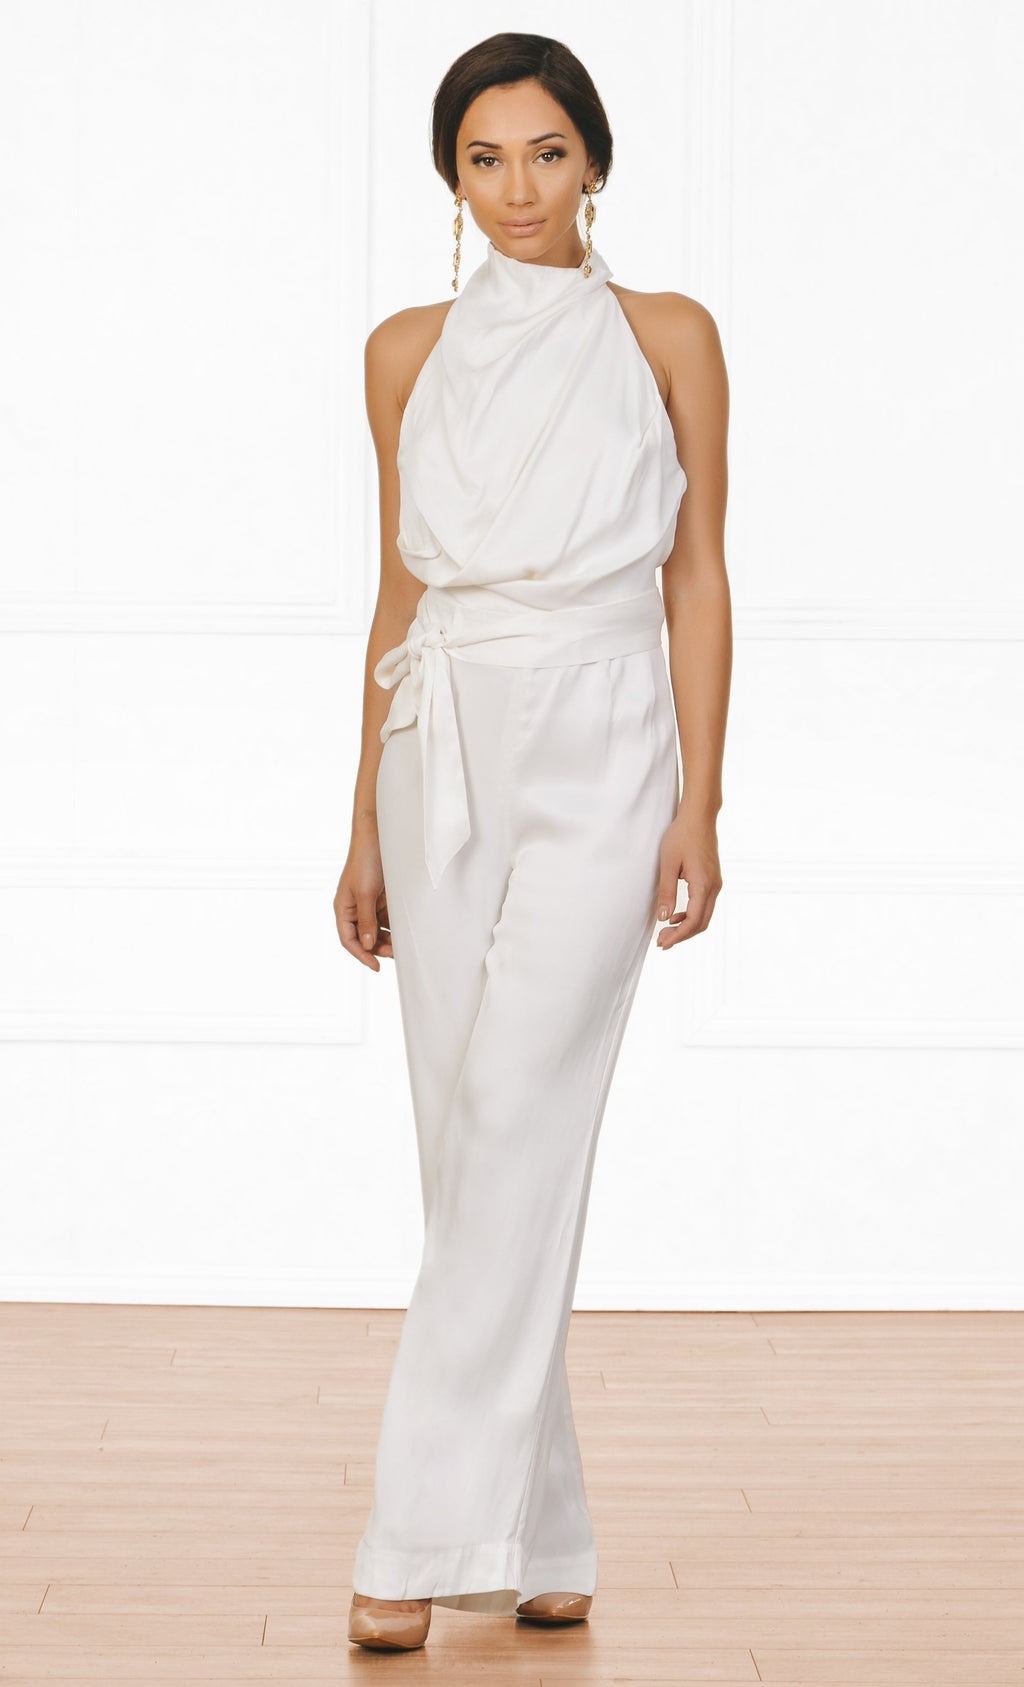 Indie XO Resort Ready White Sleeveless Mock Neck Draped Backless Halter Tie Belt Jumpsuit - Sold Out